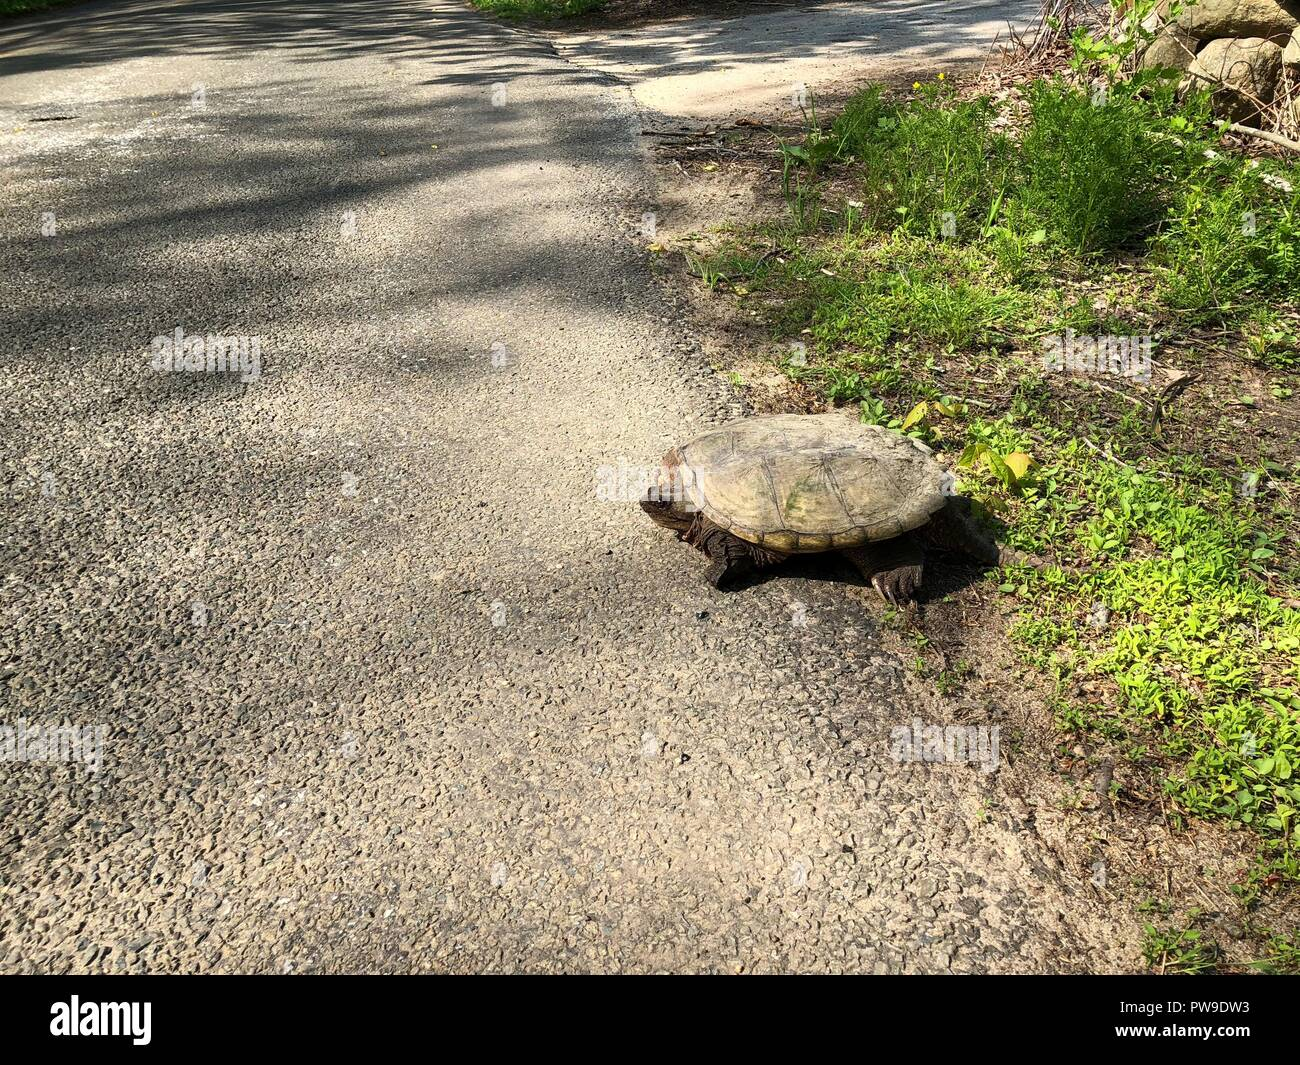 Snapping turtle sitting at the side of a rural road in sunshine Stock Photo